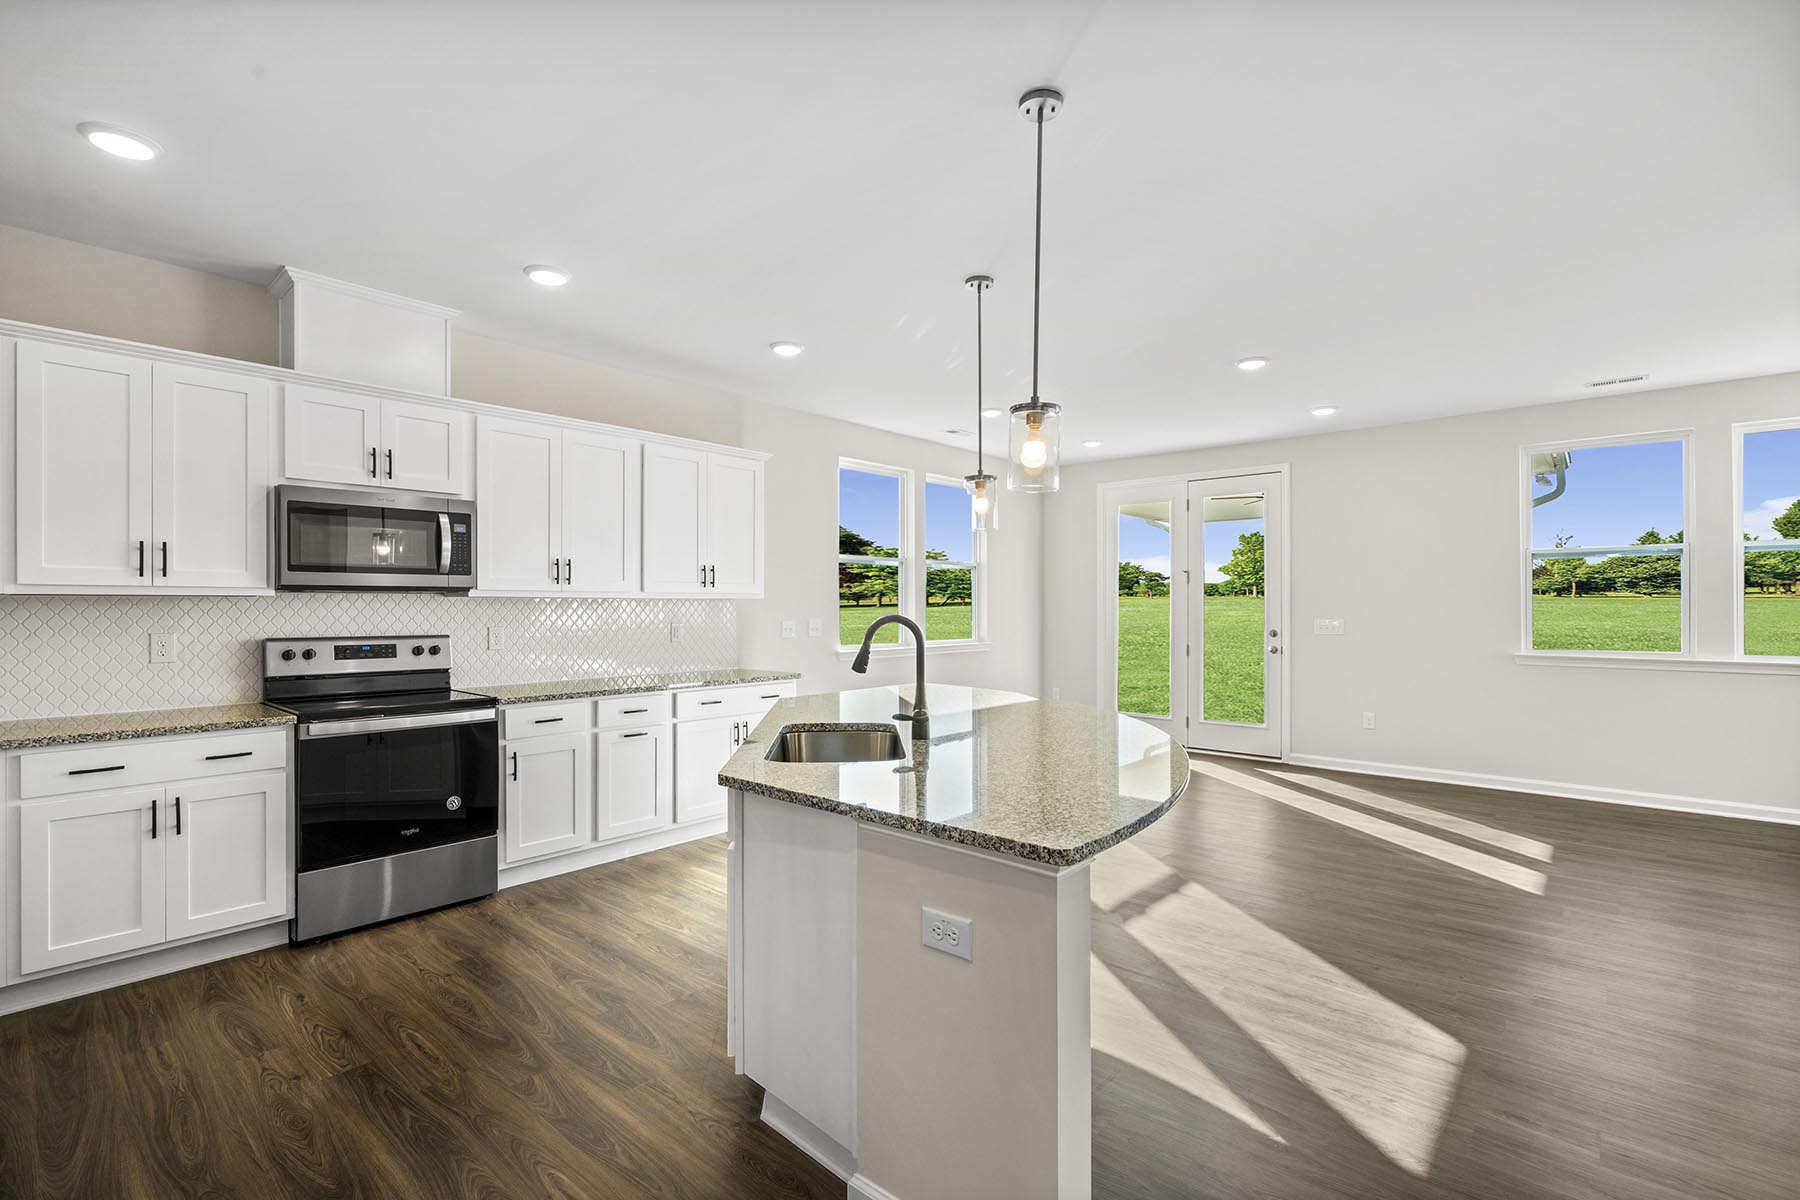 Pierce Plan Kitchen at Bent Tree in Fuquay-Varina North Carolina by Mattamy Homes